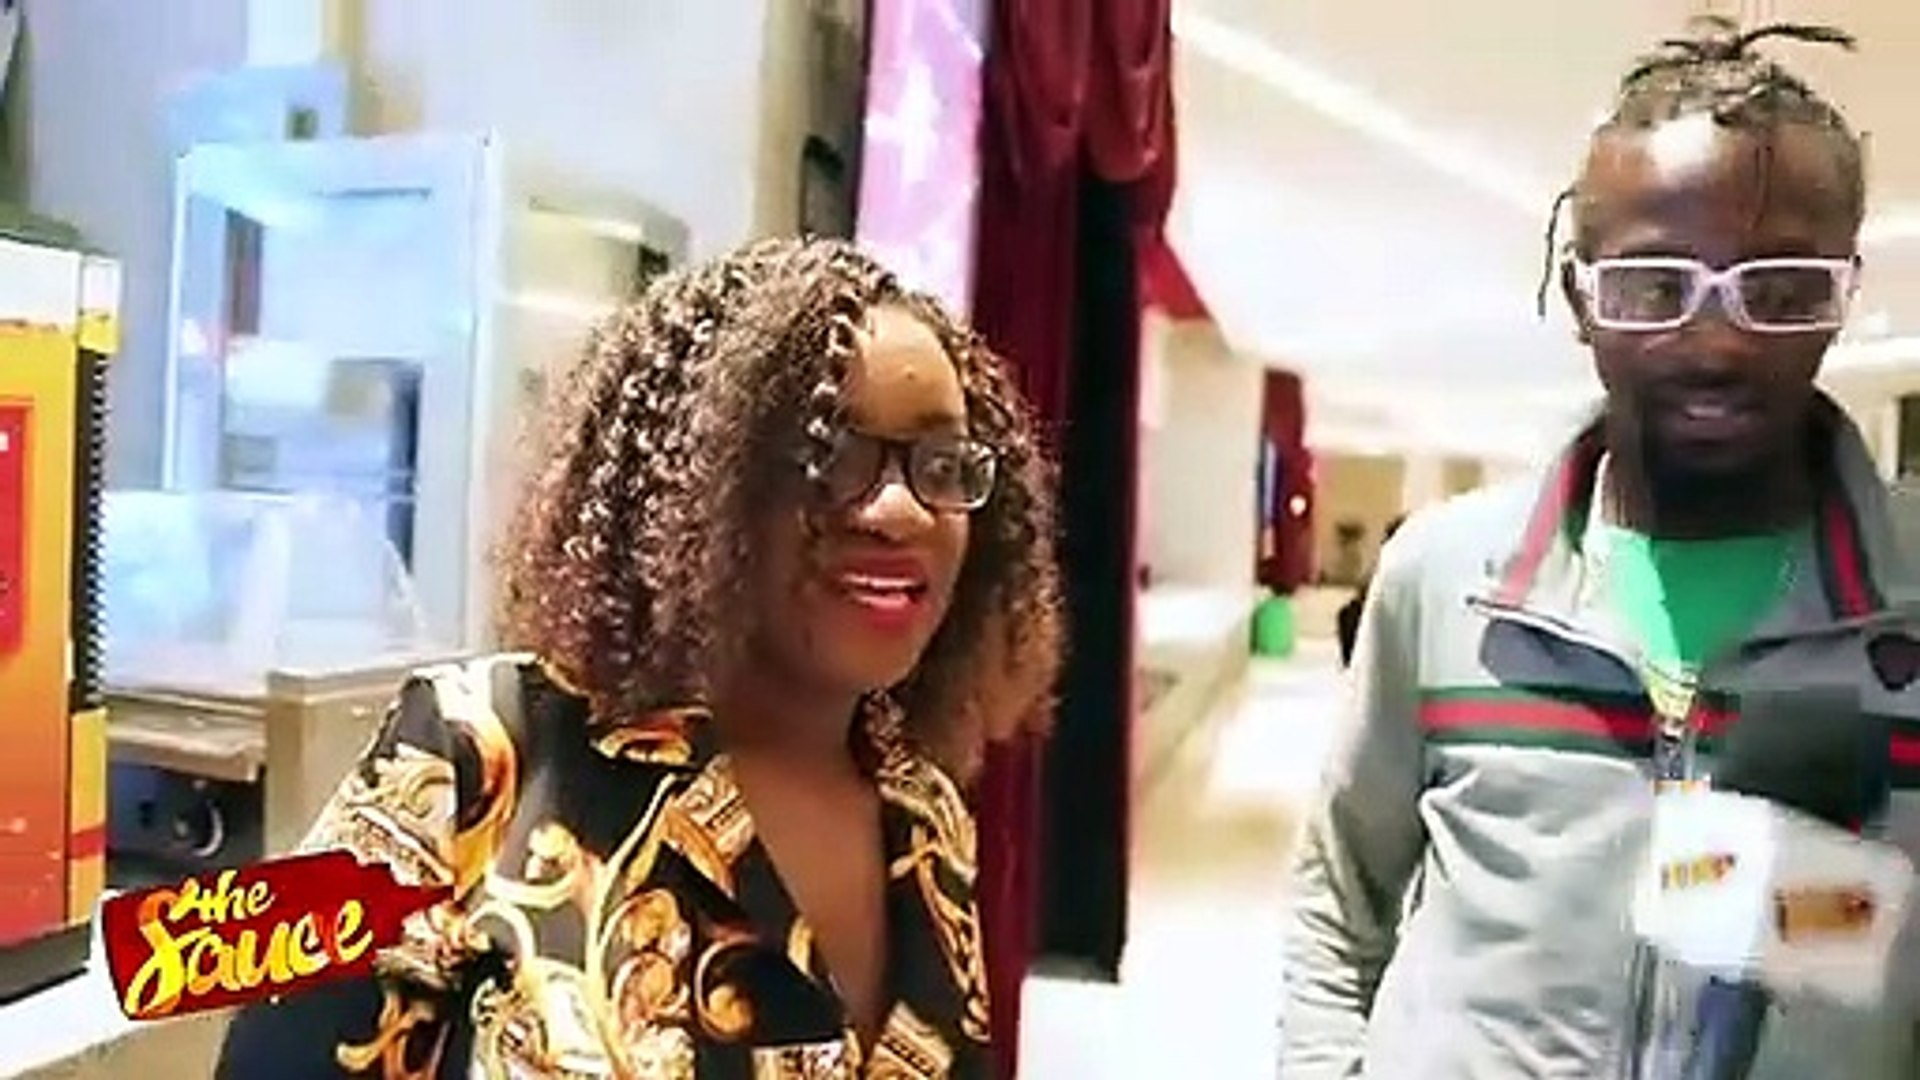 Kenyans react to Hobbs & Shaw film following its premiere - ENGCLIP.com